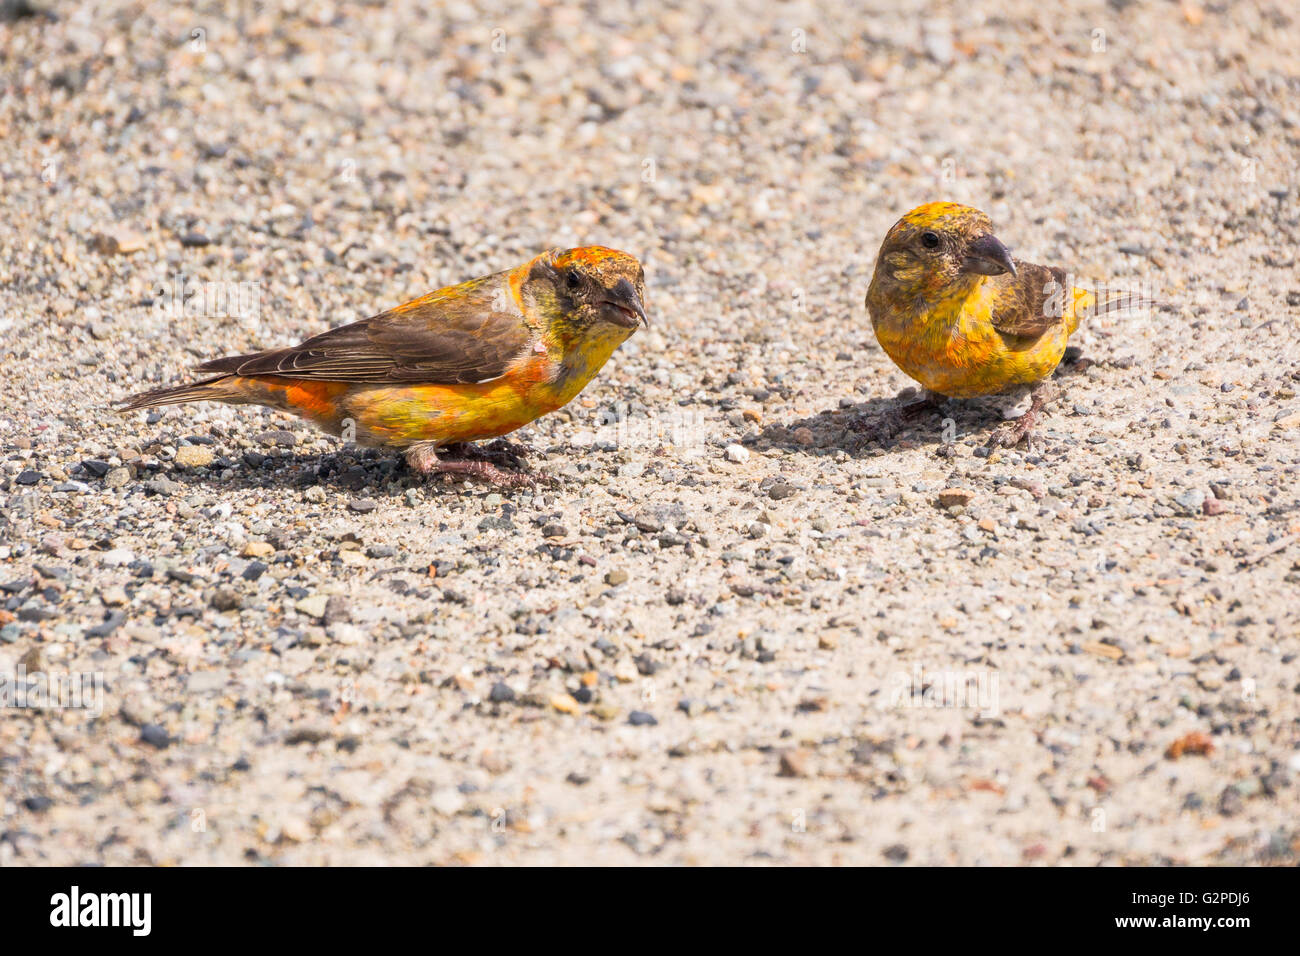 Finches seen roadside in E. C, Manning Provincial Park, Hope-Princeton Highway, BC  Canada - Stock Image